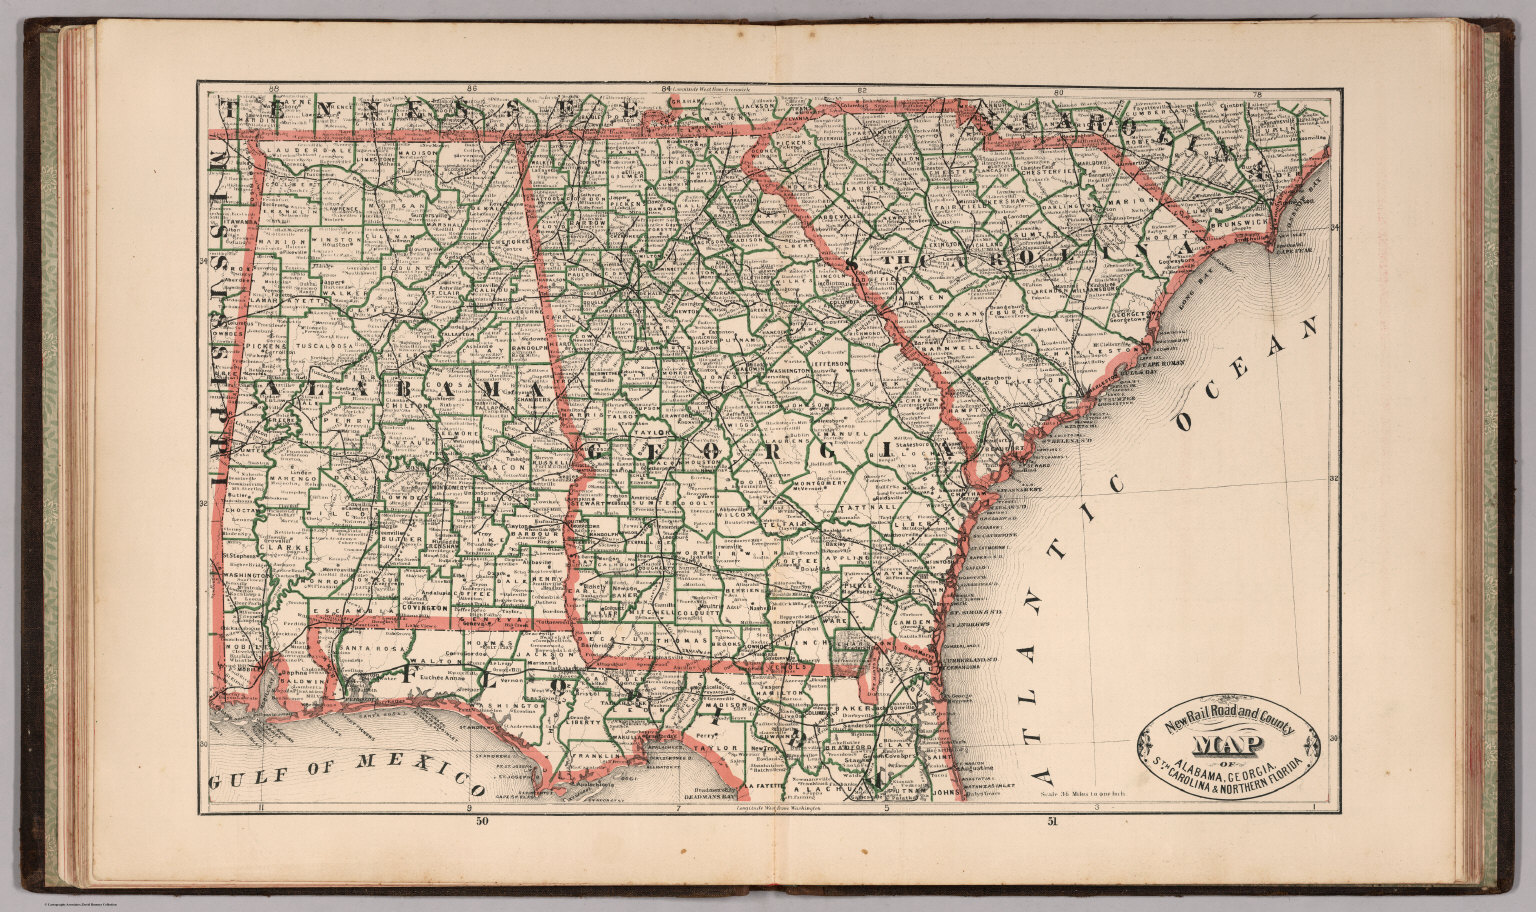 New Rail Road and County Map of Alabama  Georgia  South Carolina and     New Rail Road and County Map of Alabama  Georgia  South Carolina and  Northern Florida    David Rumsey Historical Map Collection